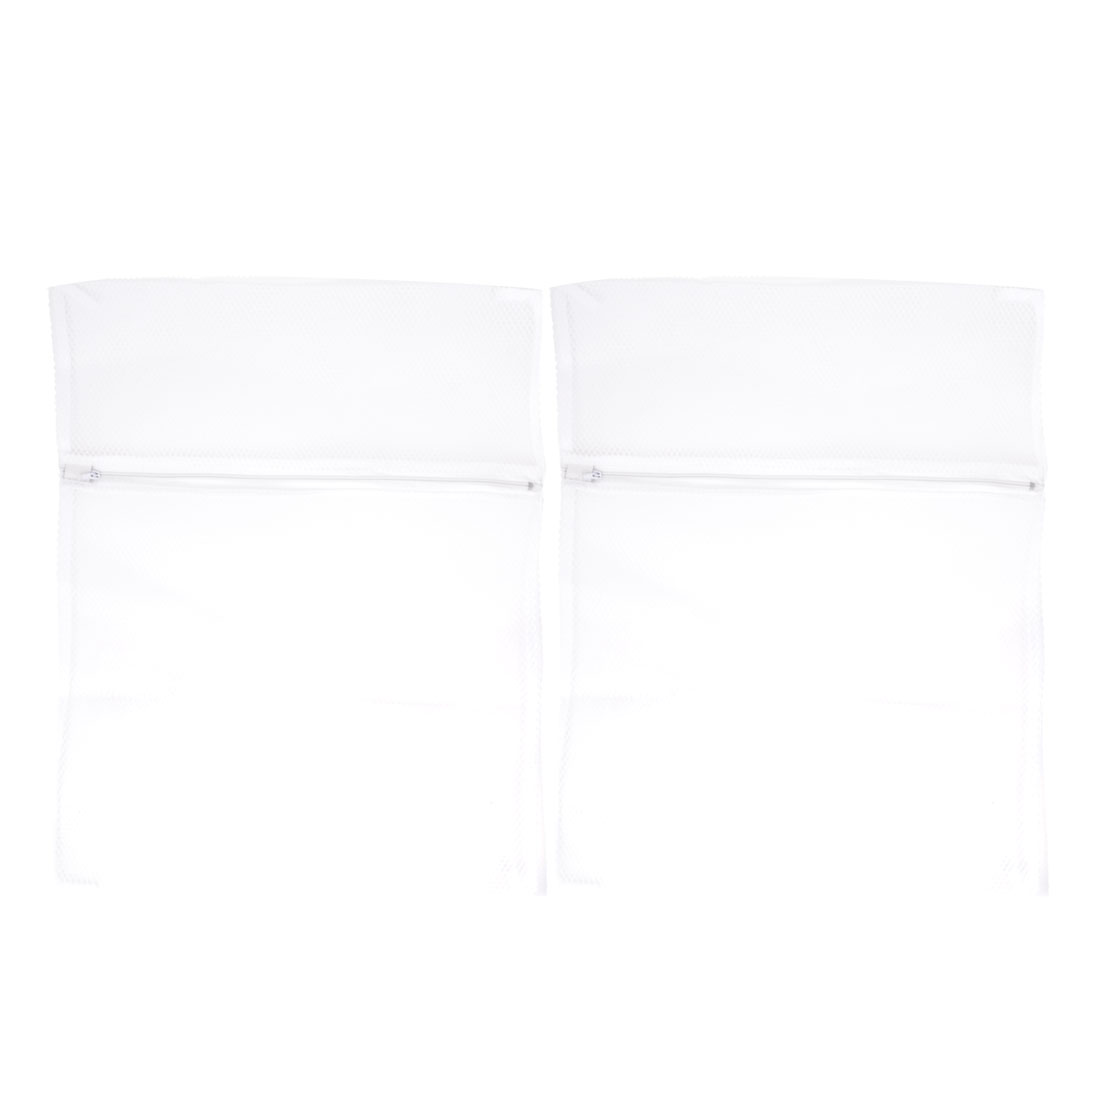 Home Zipper Closure White Polyester Mesh Clothes Washing Bag 48cm x 38cm 2Pcs